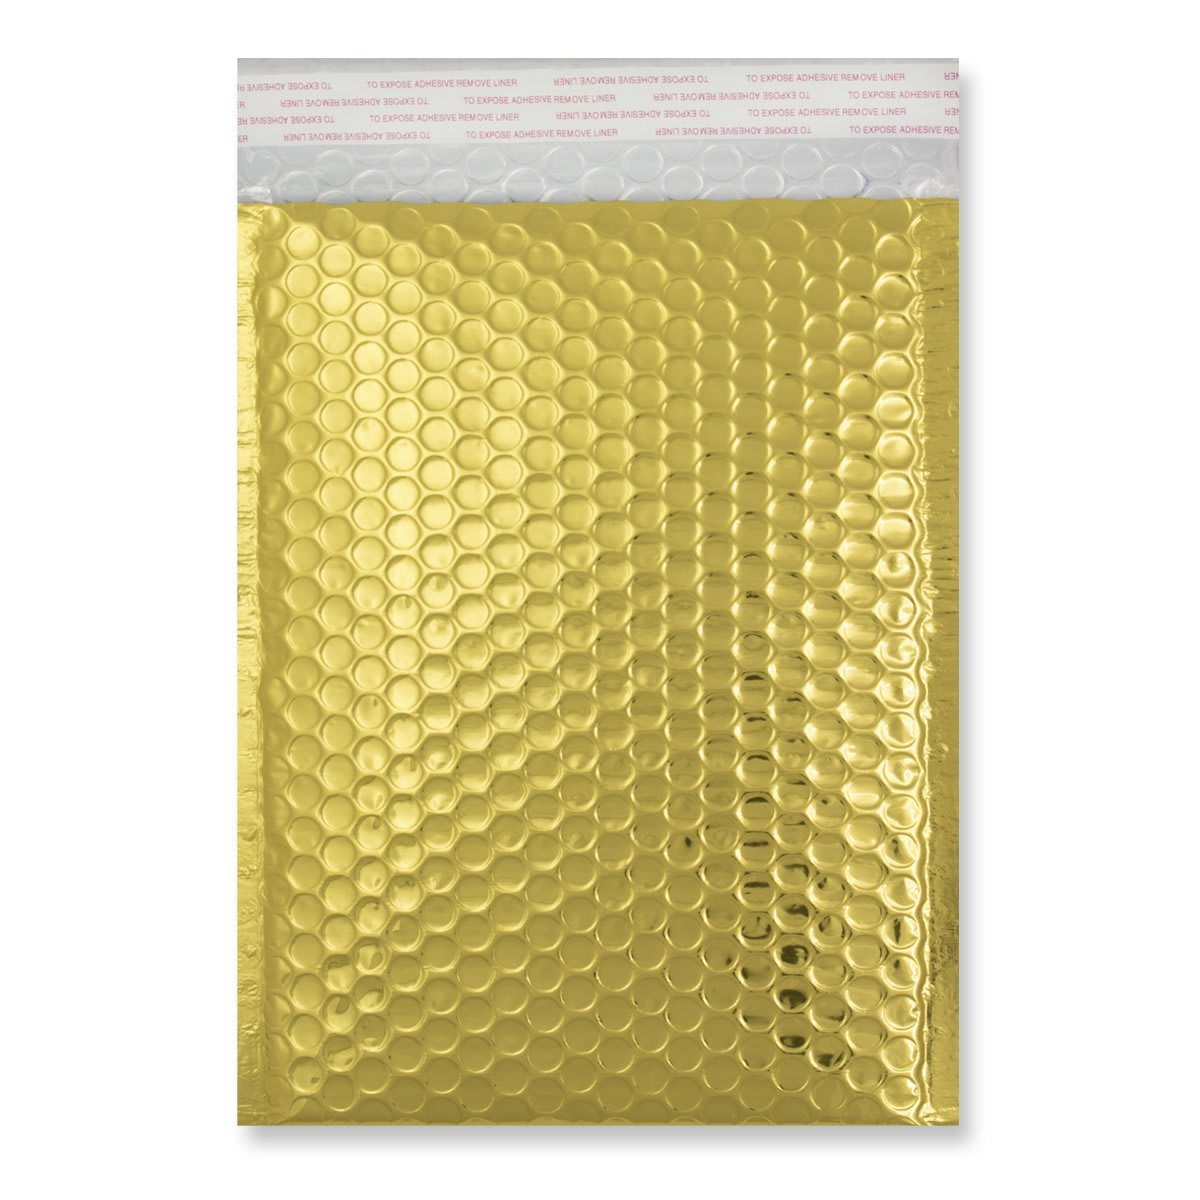 C5 + GLOSS METALLIC GOLD PADDED ENVELOPES (250 x 180MM)